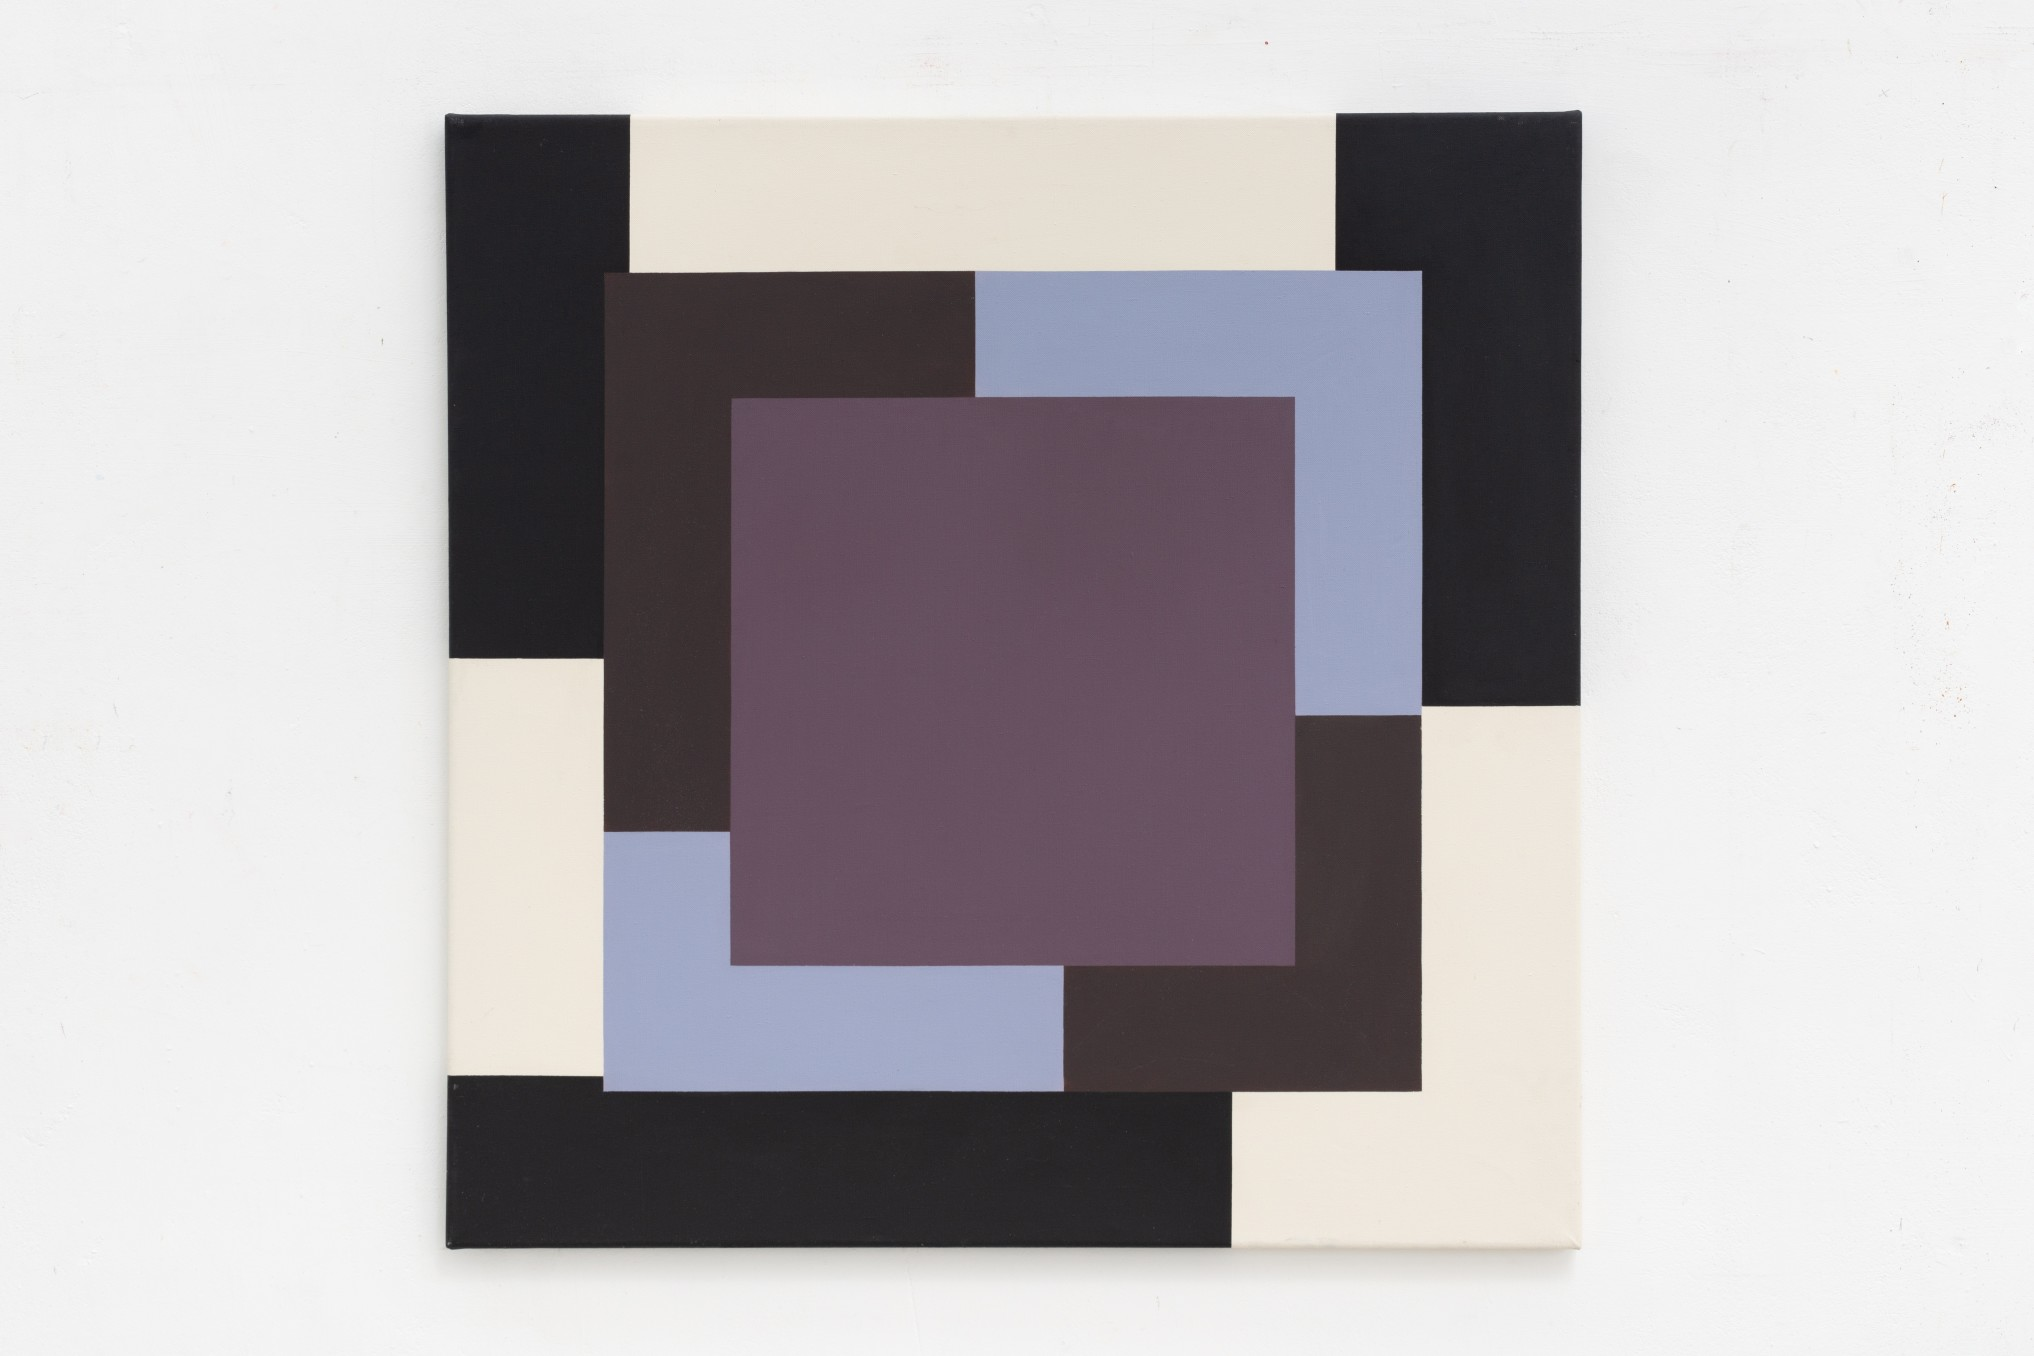 Mary Webb Extended square no. 2, 1969 Oil on canvas 91.4 x 91.4 cm 36 x 36 in